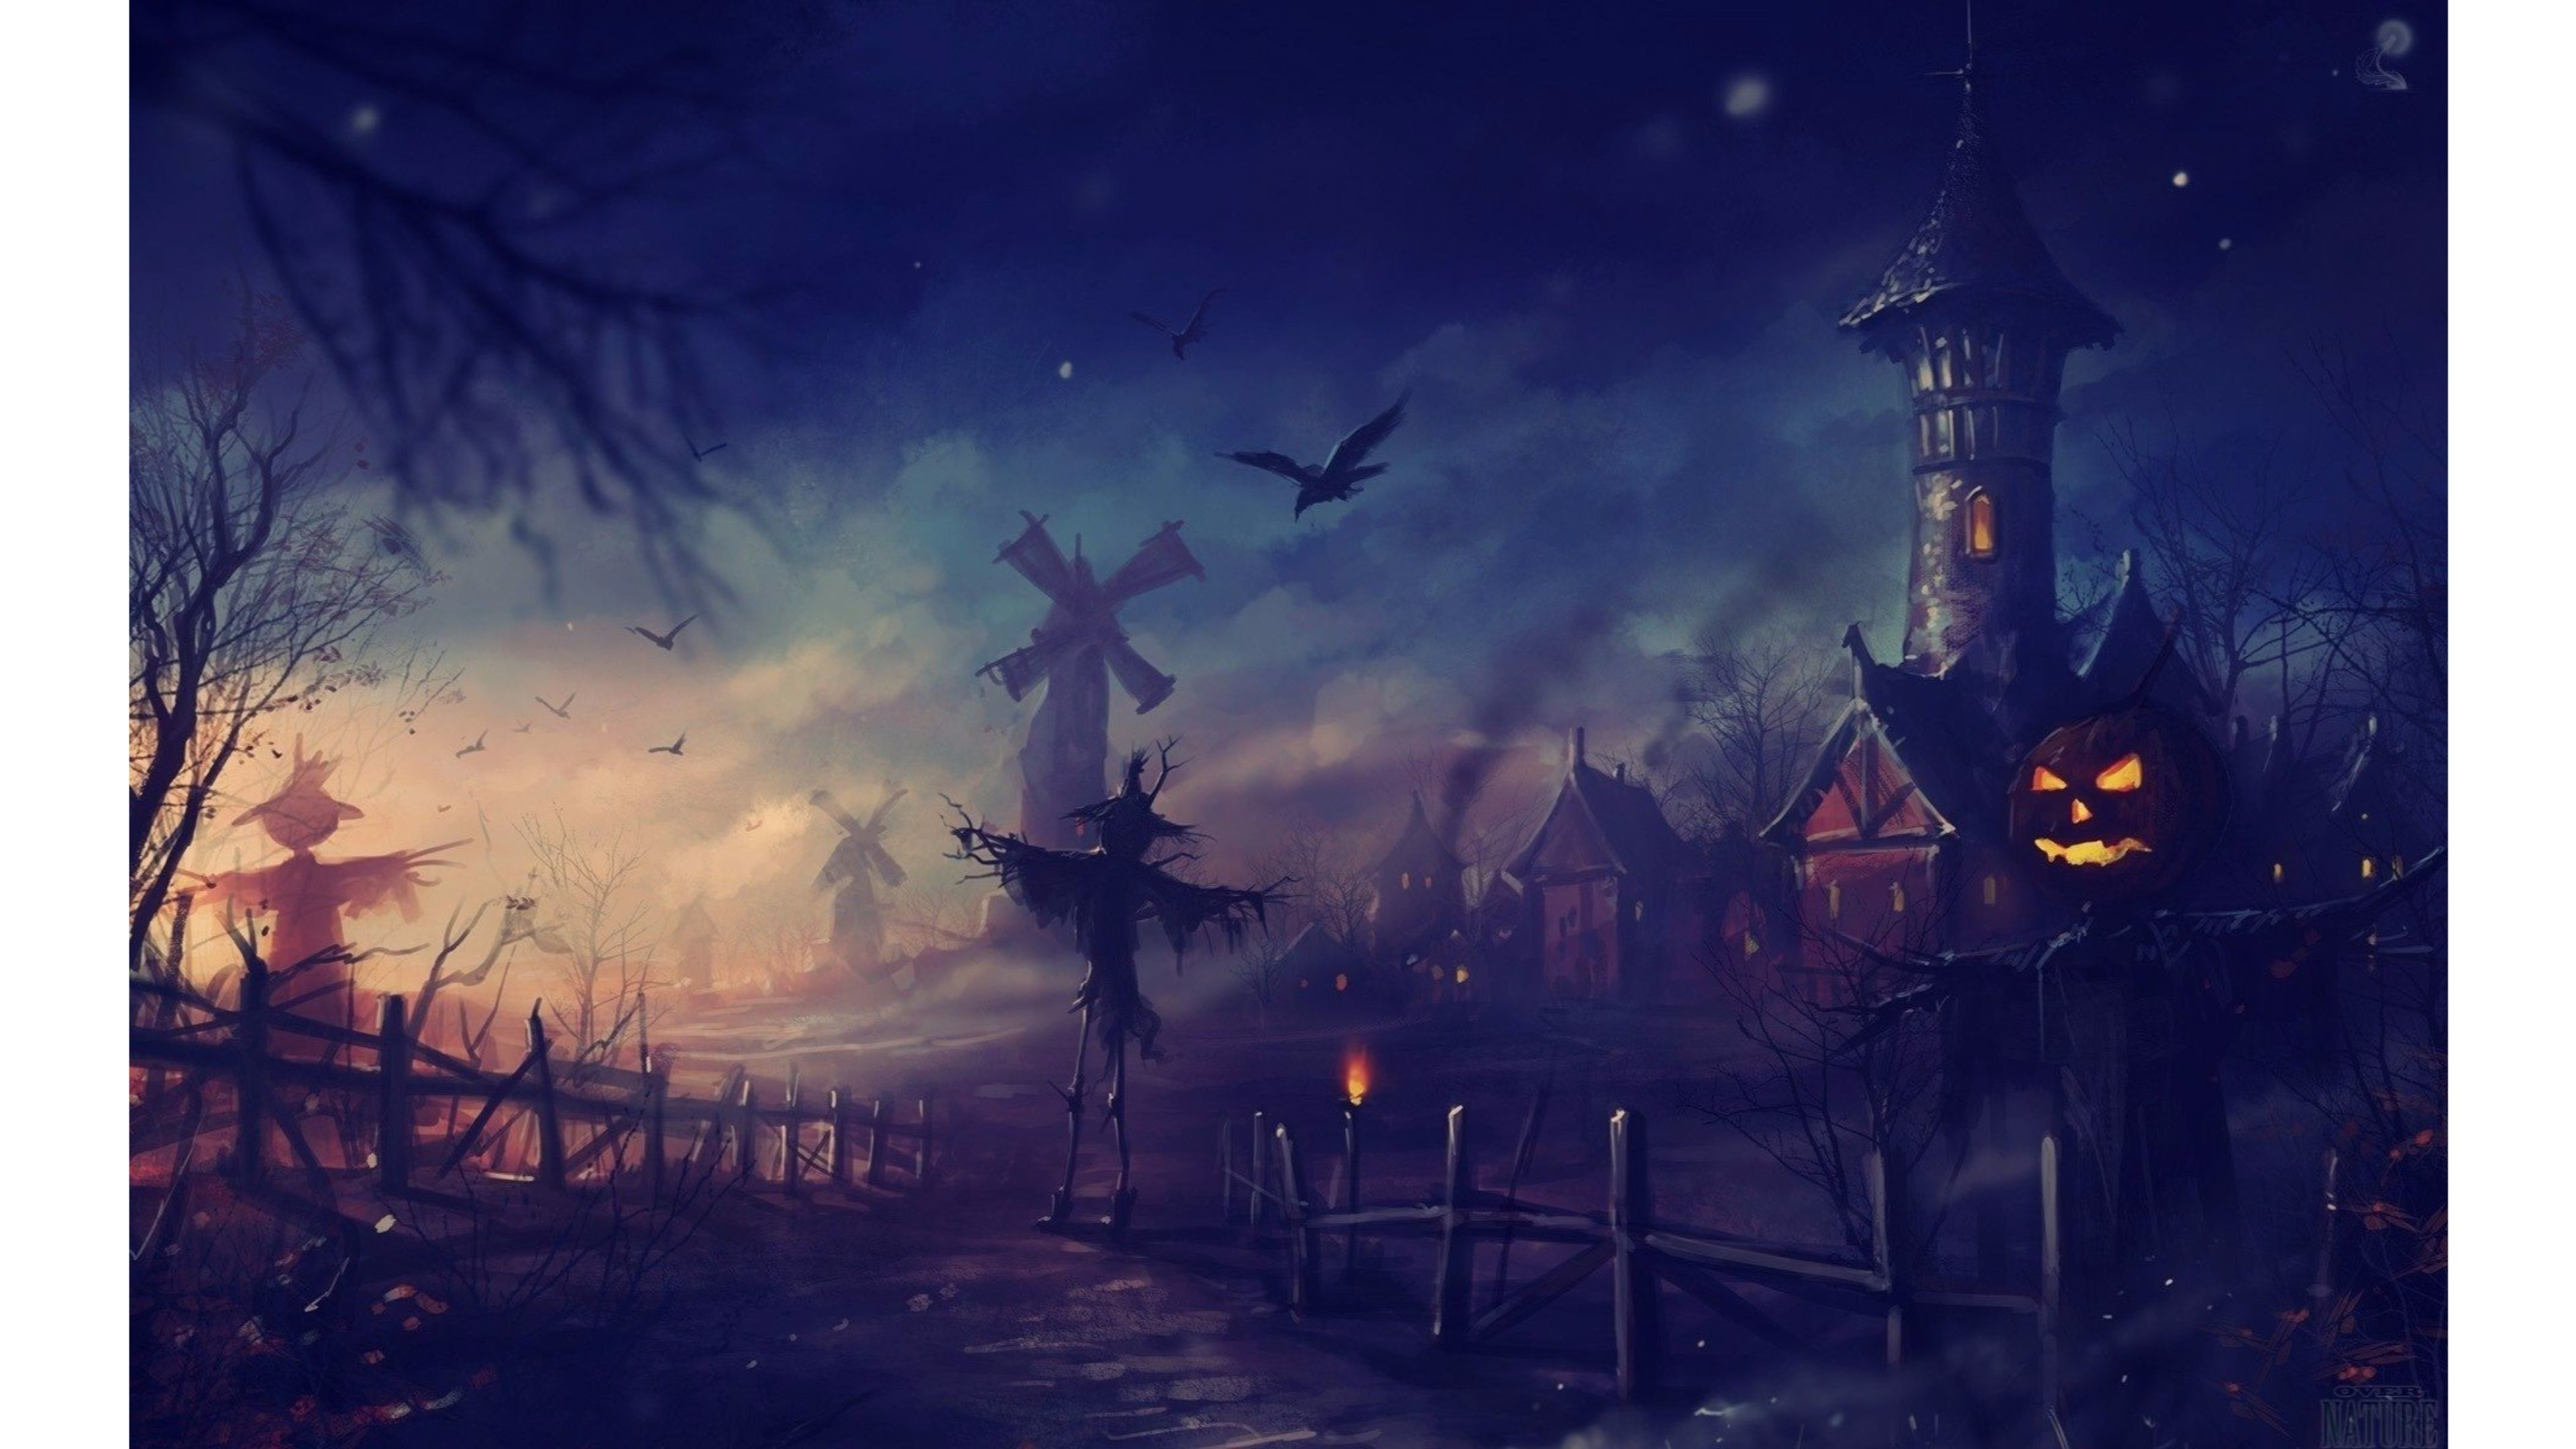 Halloween Scary Wallpaper (64+ images)